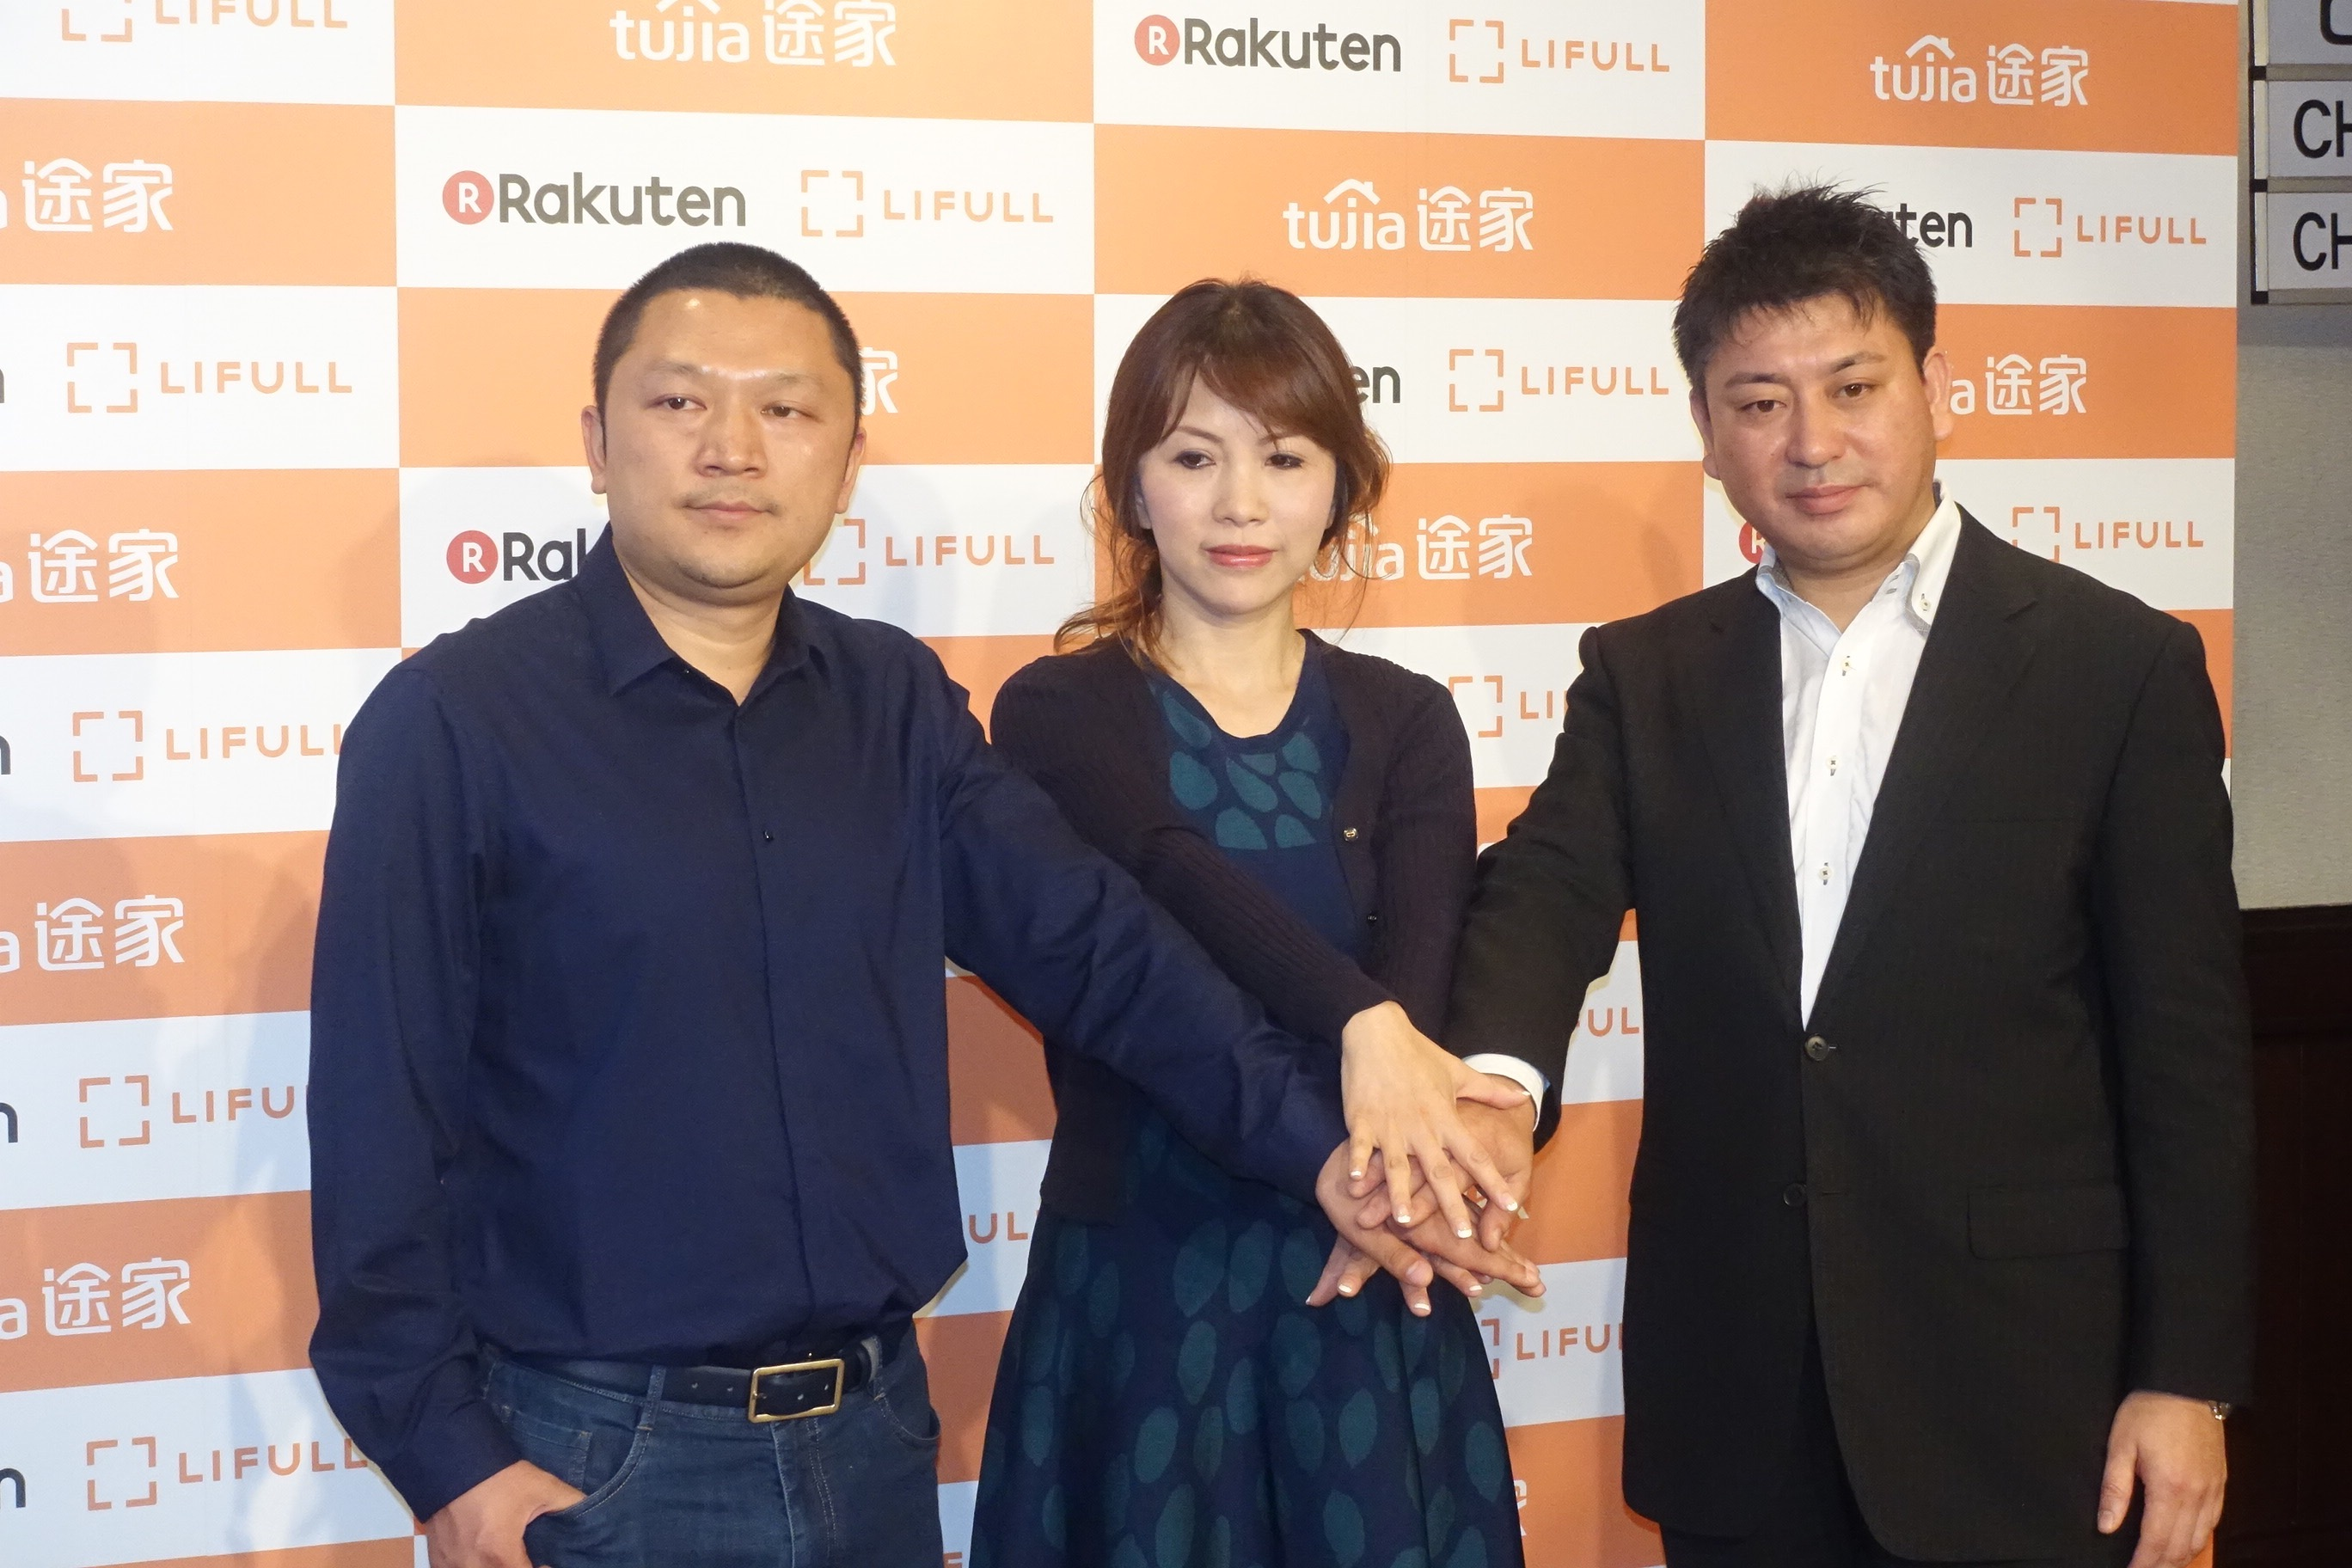 China's largest vacation rental platform Tujia ties up with Rakuten to exploit the Japan market in earnest